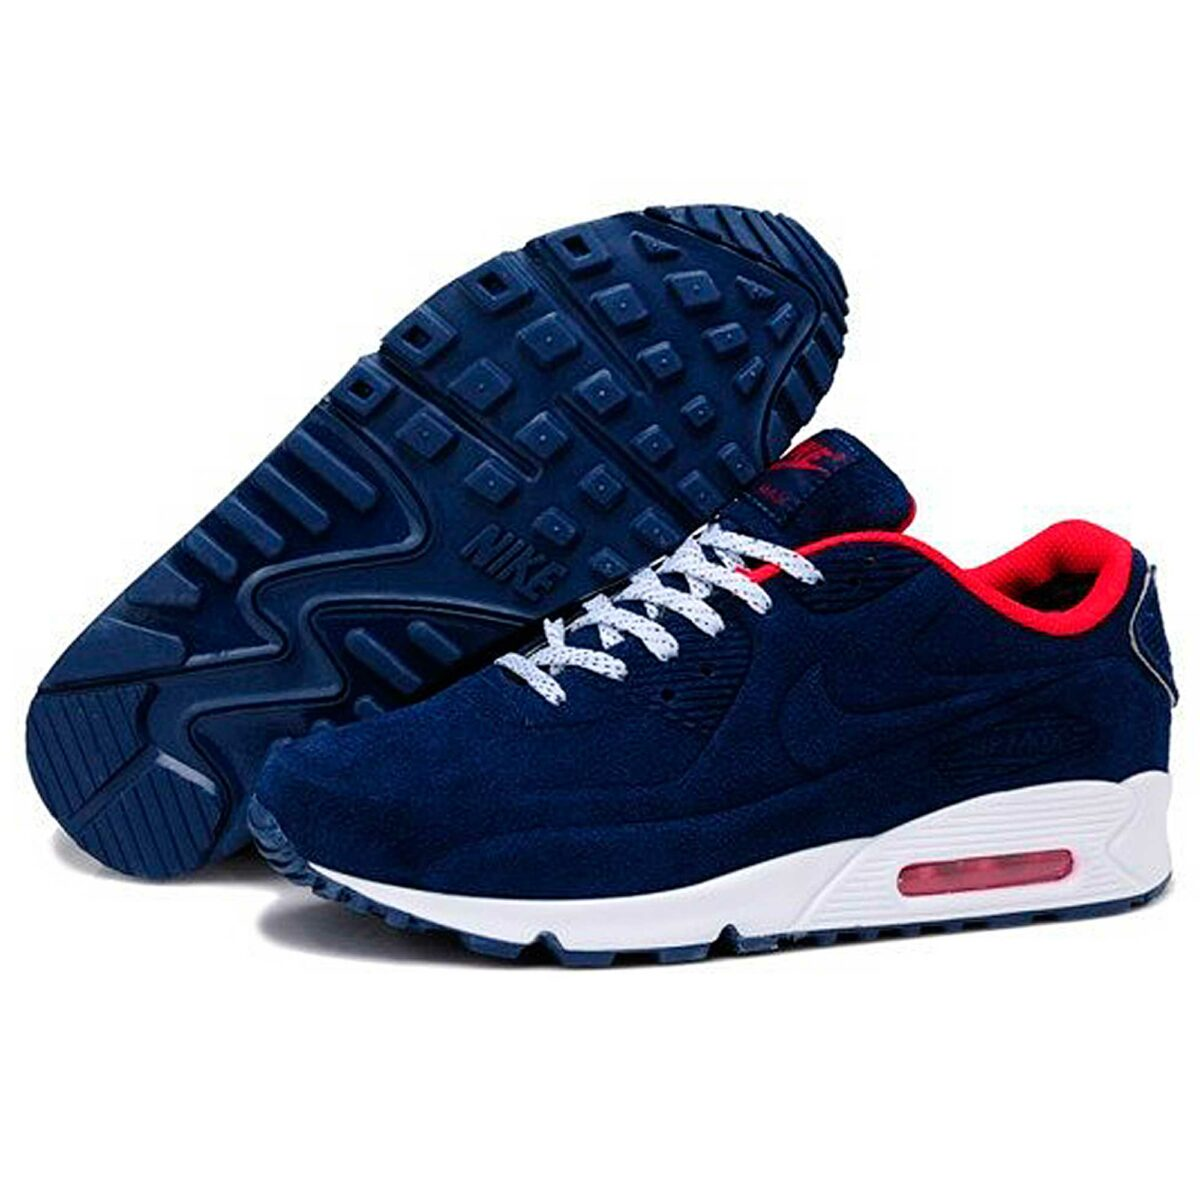 nike air max 90 vt dark blue winter купить